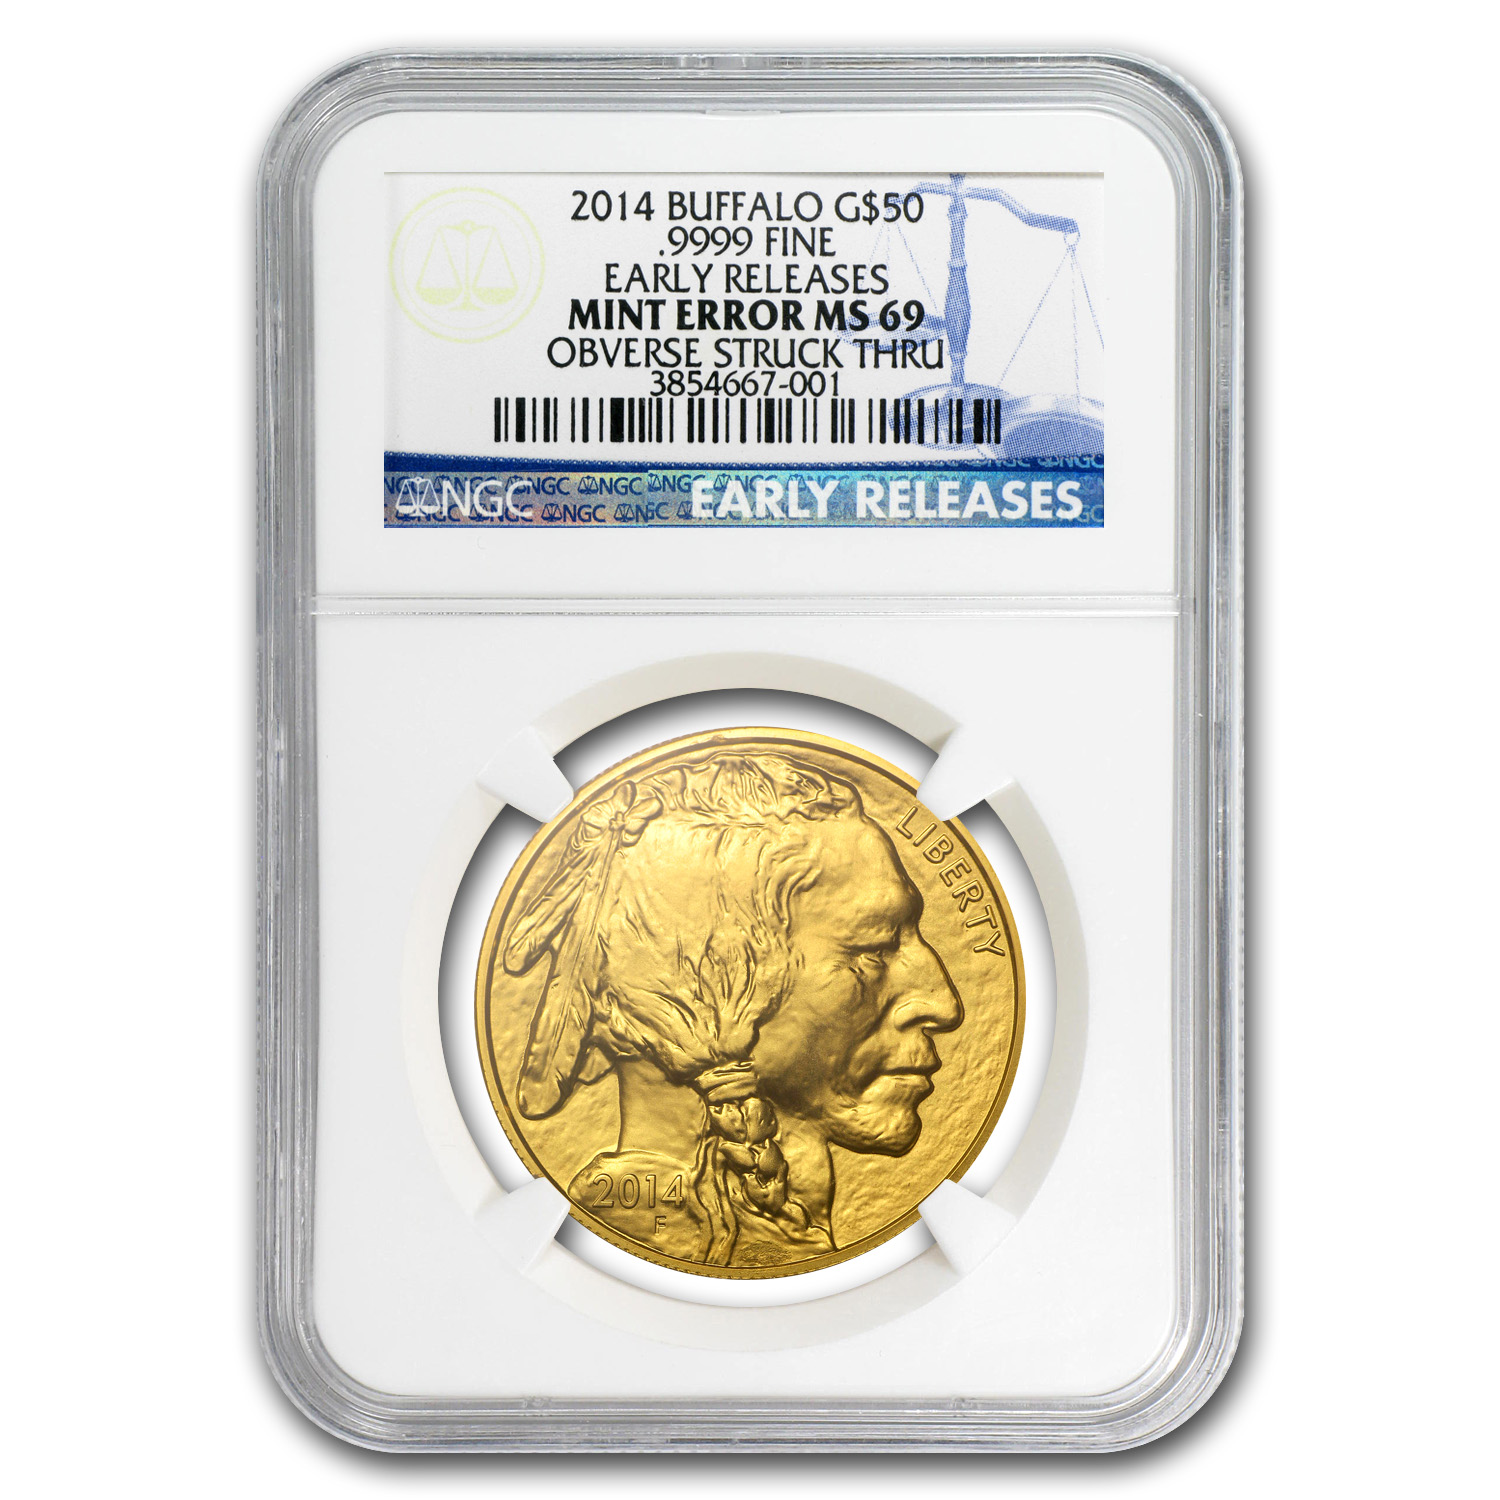 2014 1 oz Gold Buffalo MS-69 NGC (ER, Mint Error)